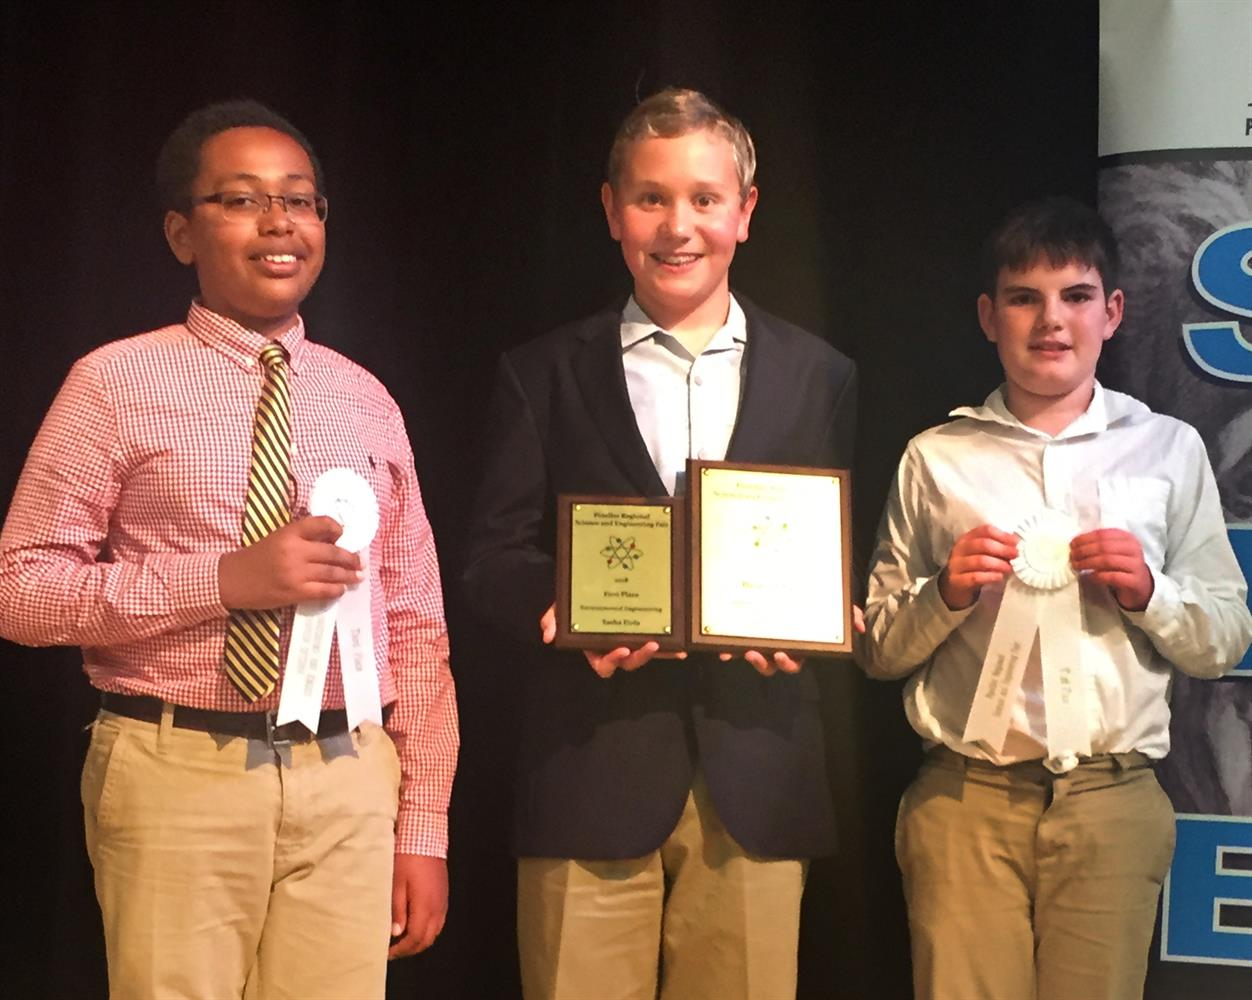 Middle School Students are Big Winners at Regional Science Fair